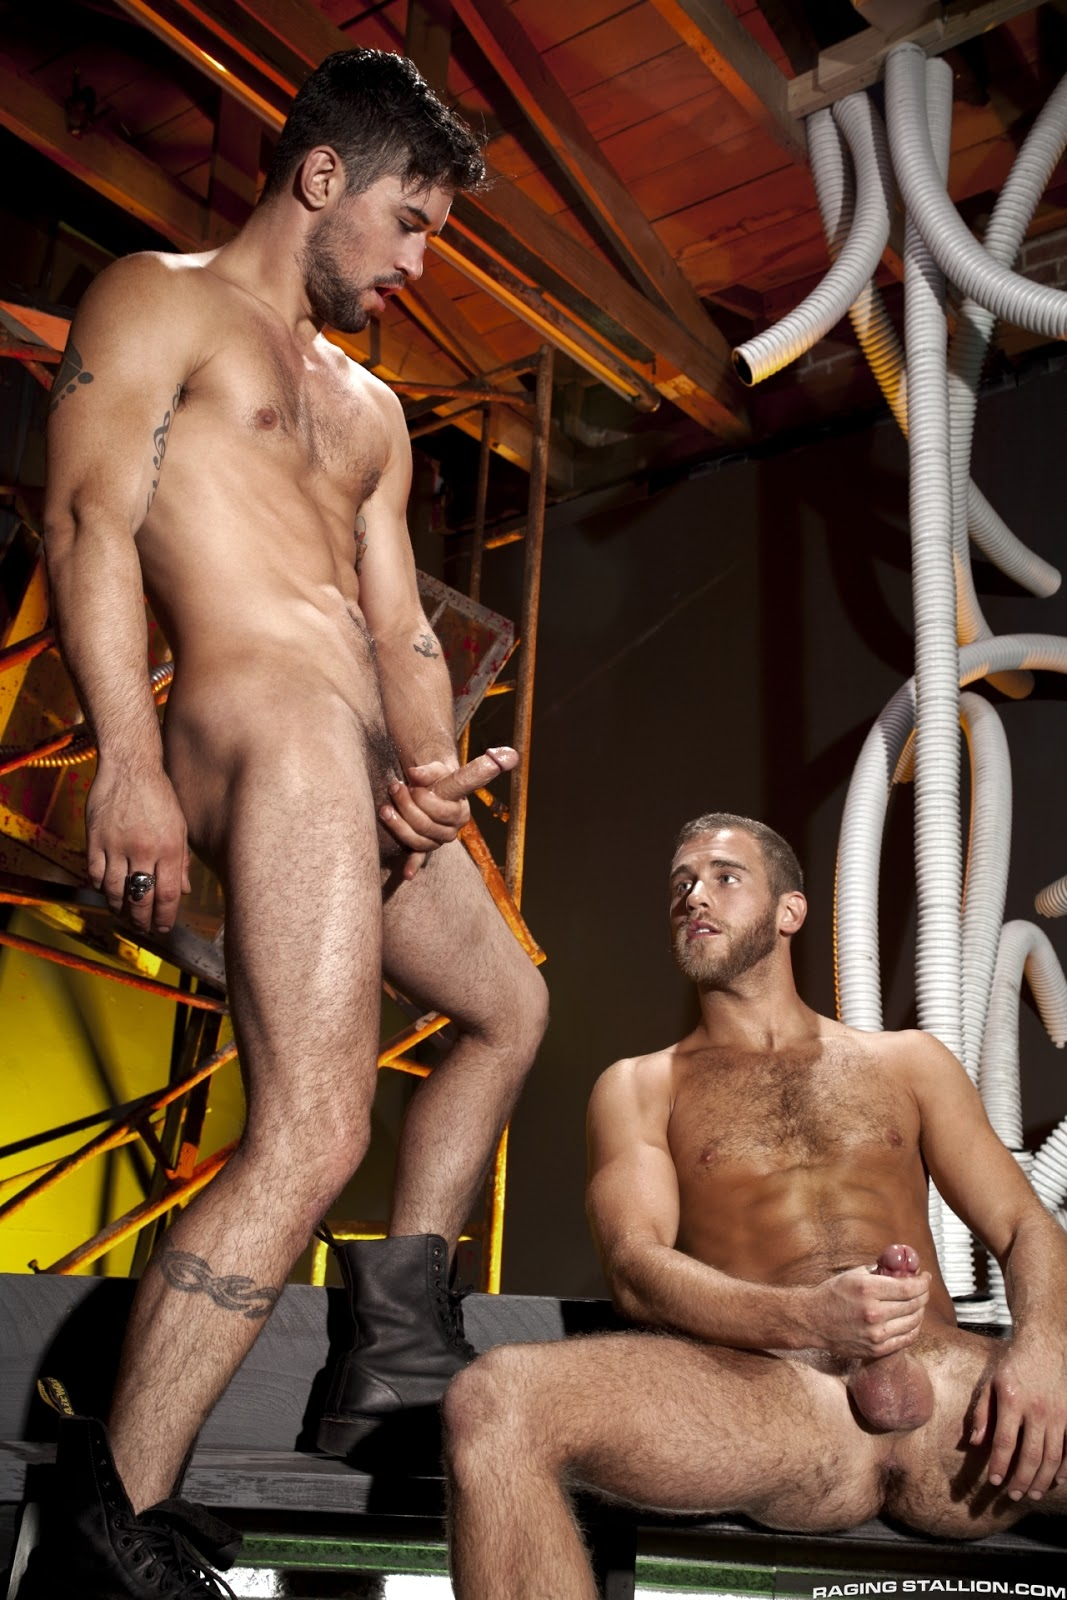 Benjamin godfre and shawn wolfe